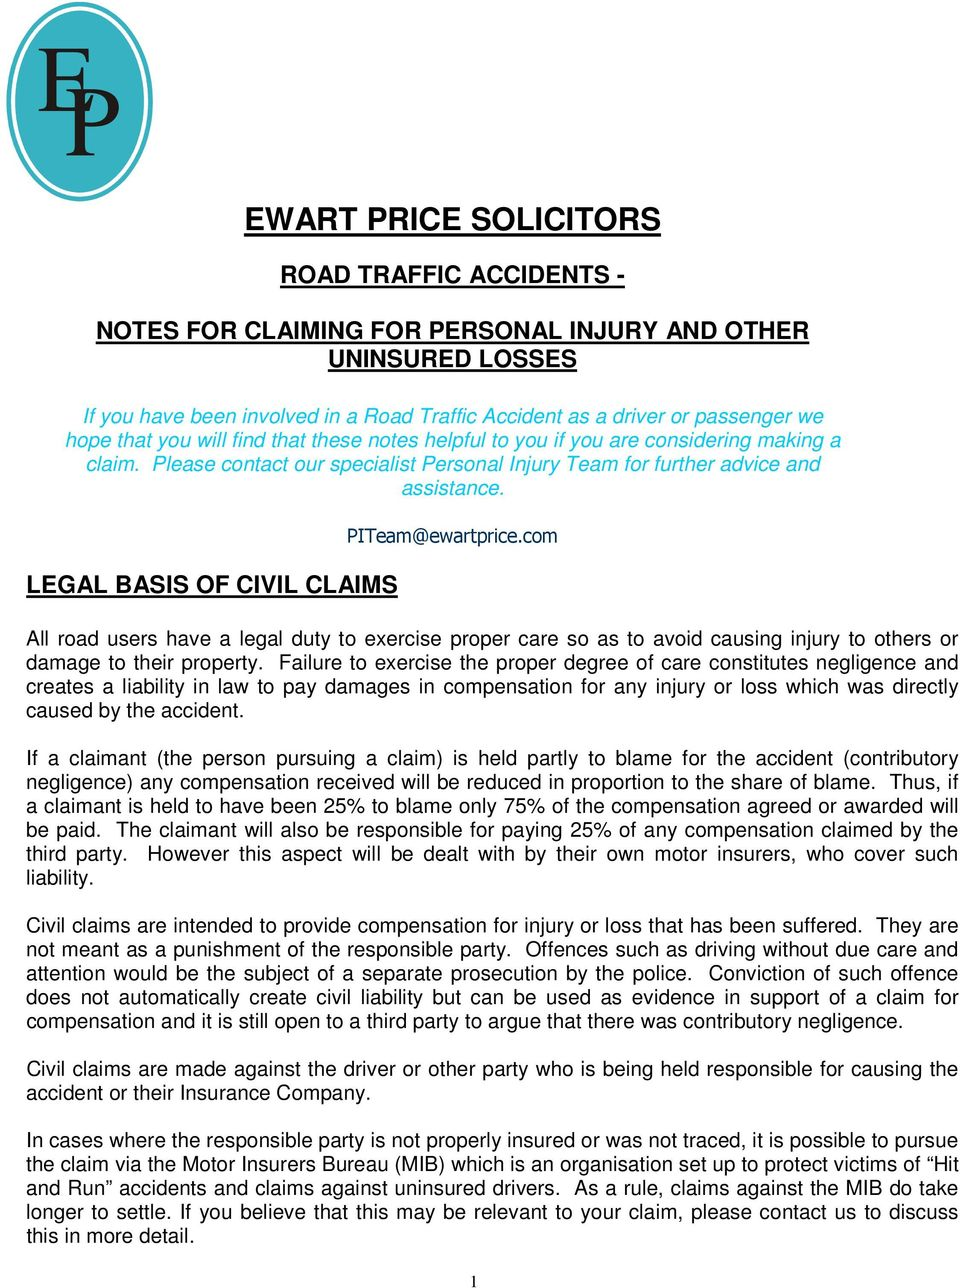 LEGAL BASIS OF CIVIL CLAIMS PITeam@ewartprice.com All road users have a legal duty to exercise proper care so as to avoid causing injury to others or damage to their property.